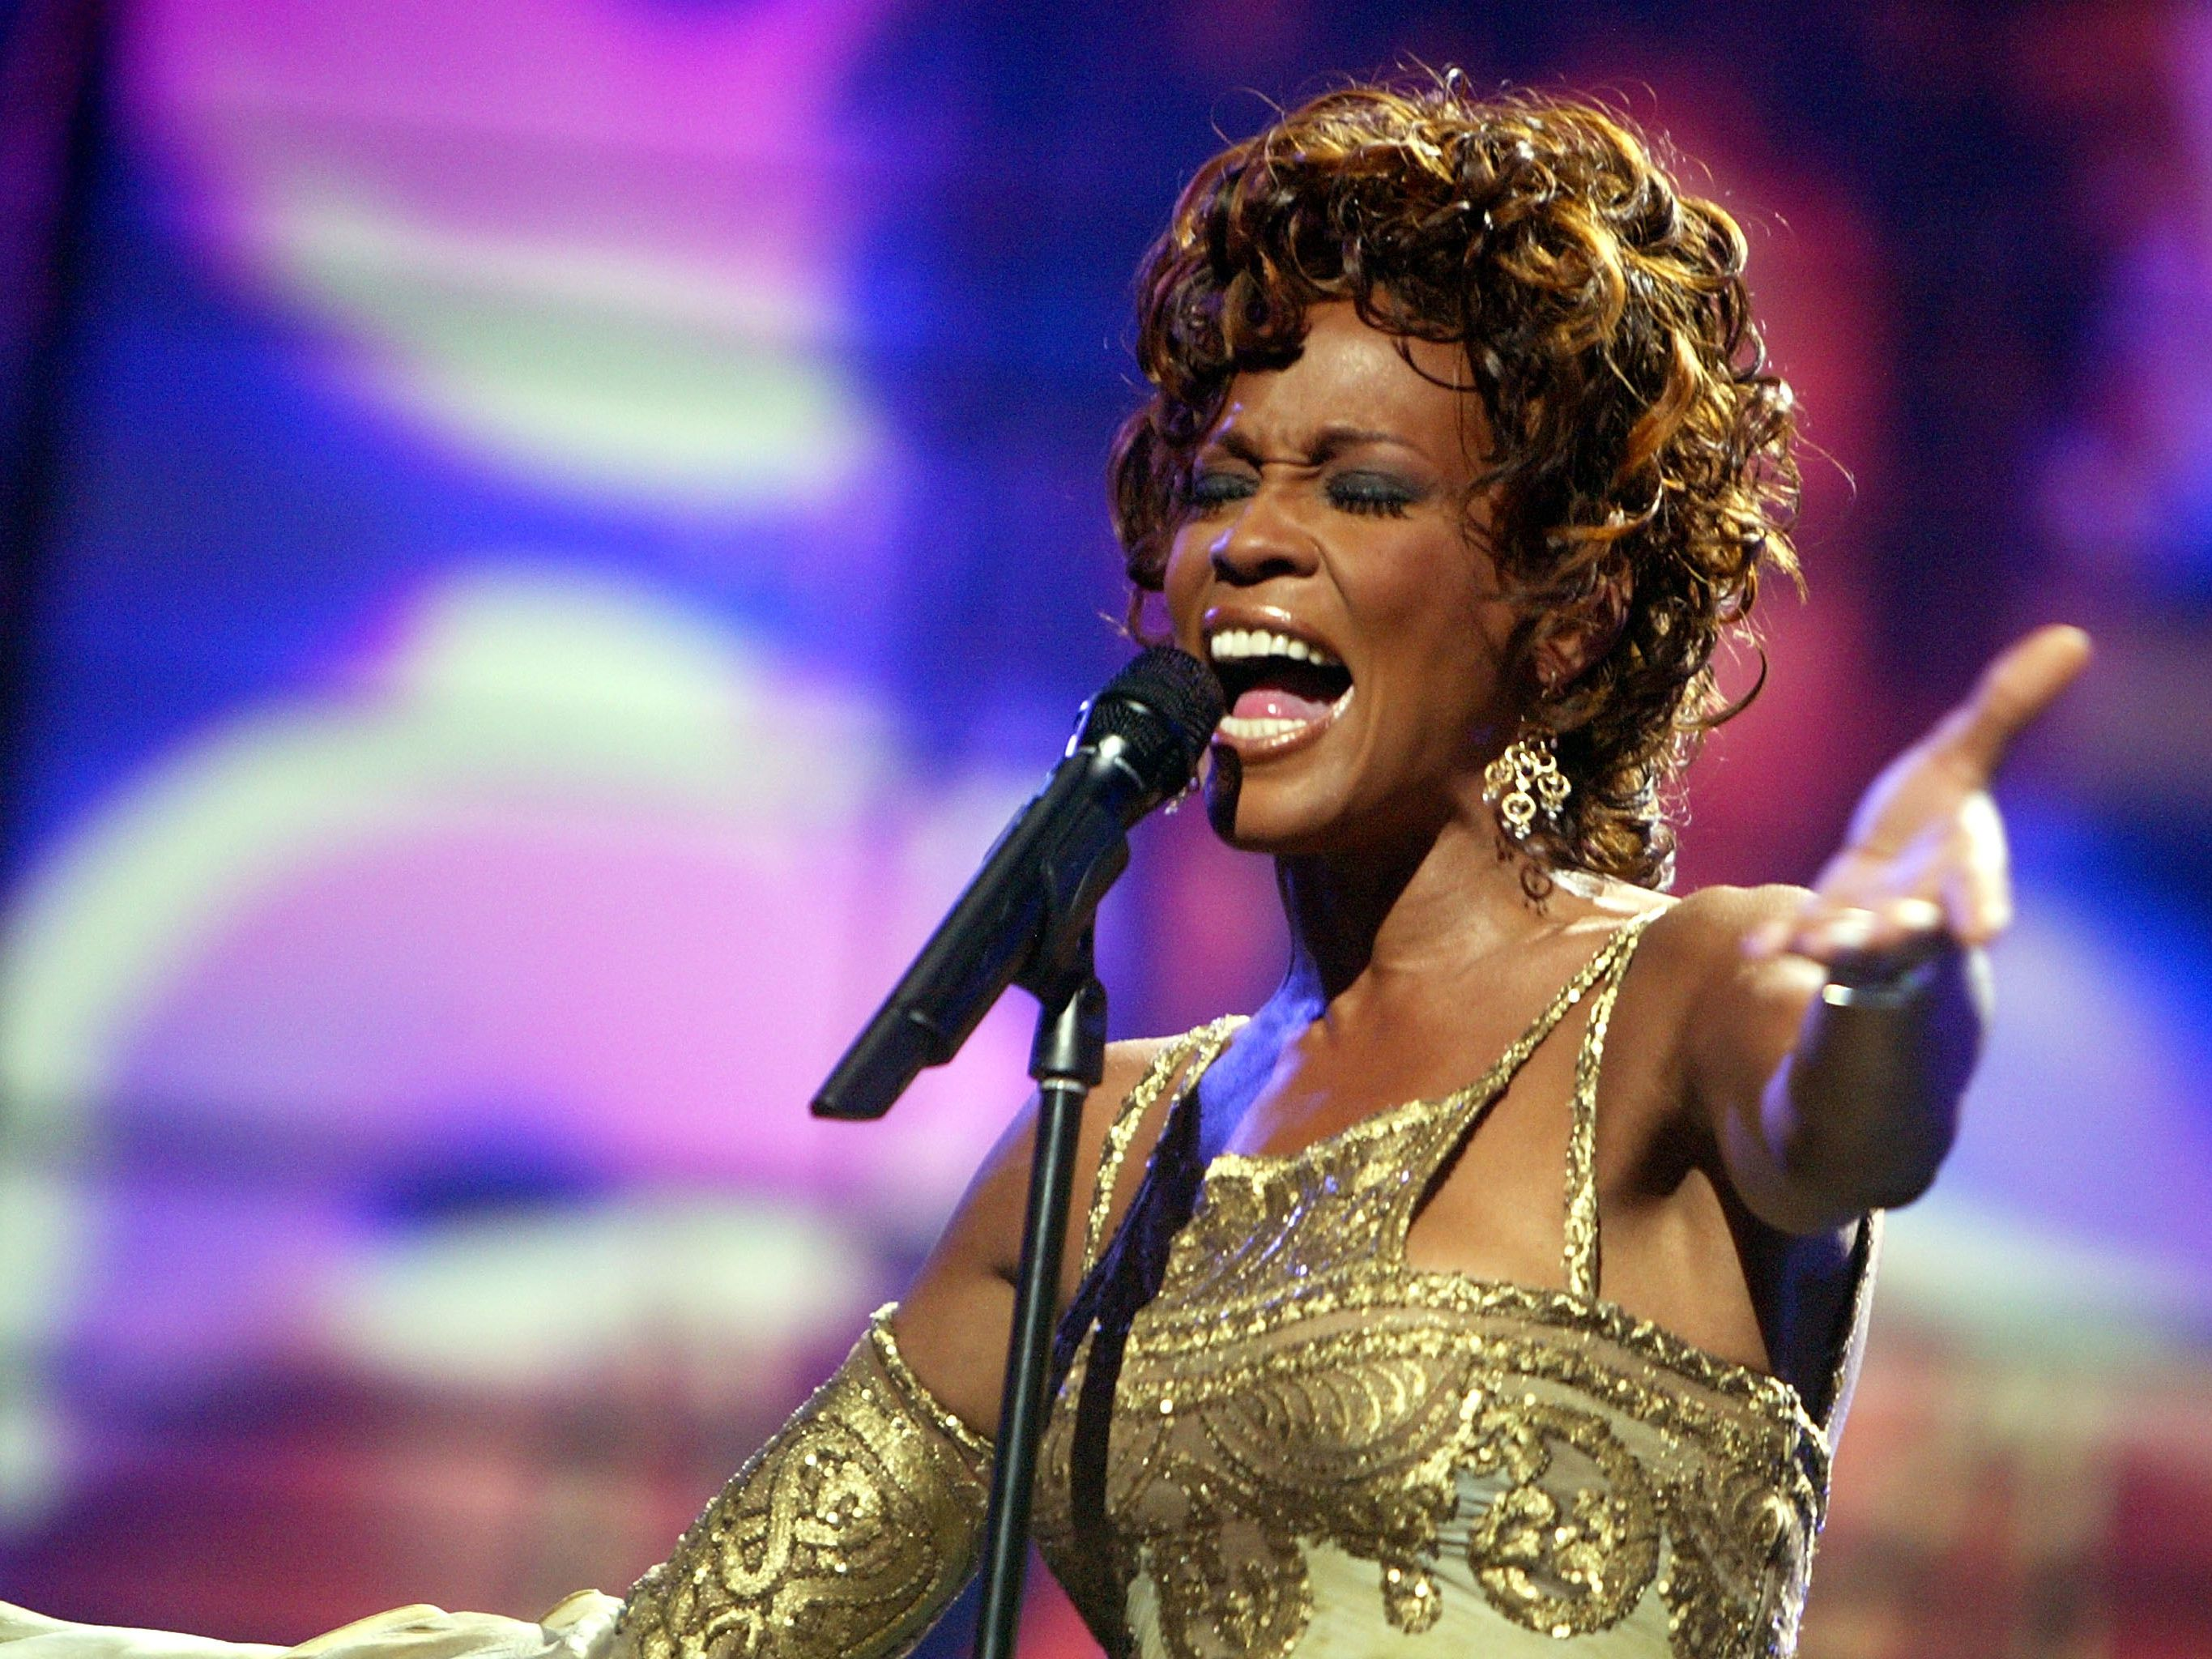 Whitney Houston - Biography and Career Details